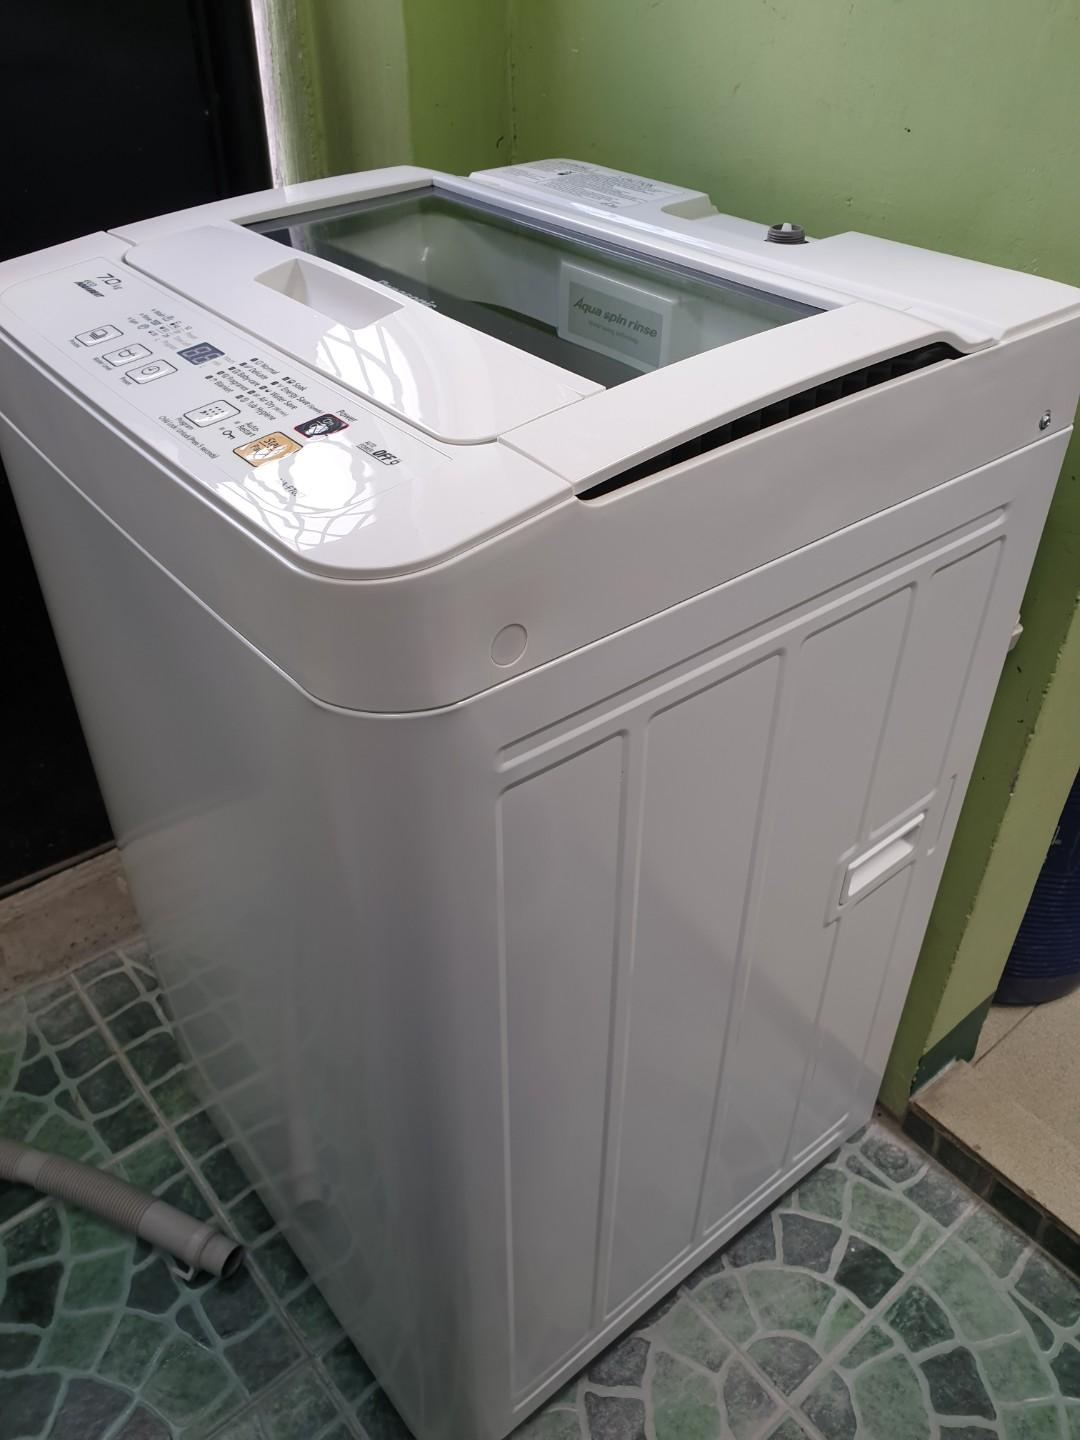 Panasonic Washing Machine photo